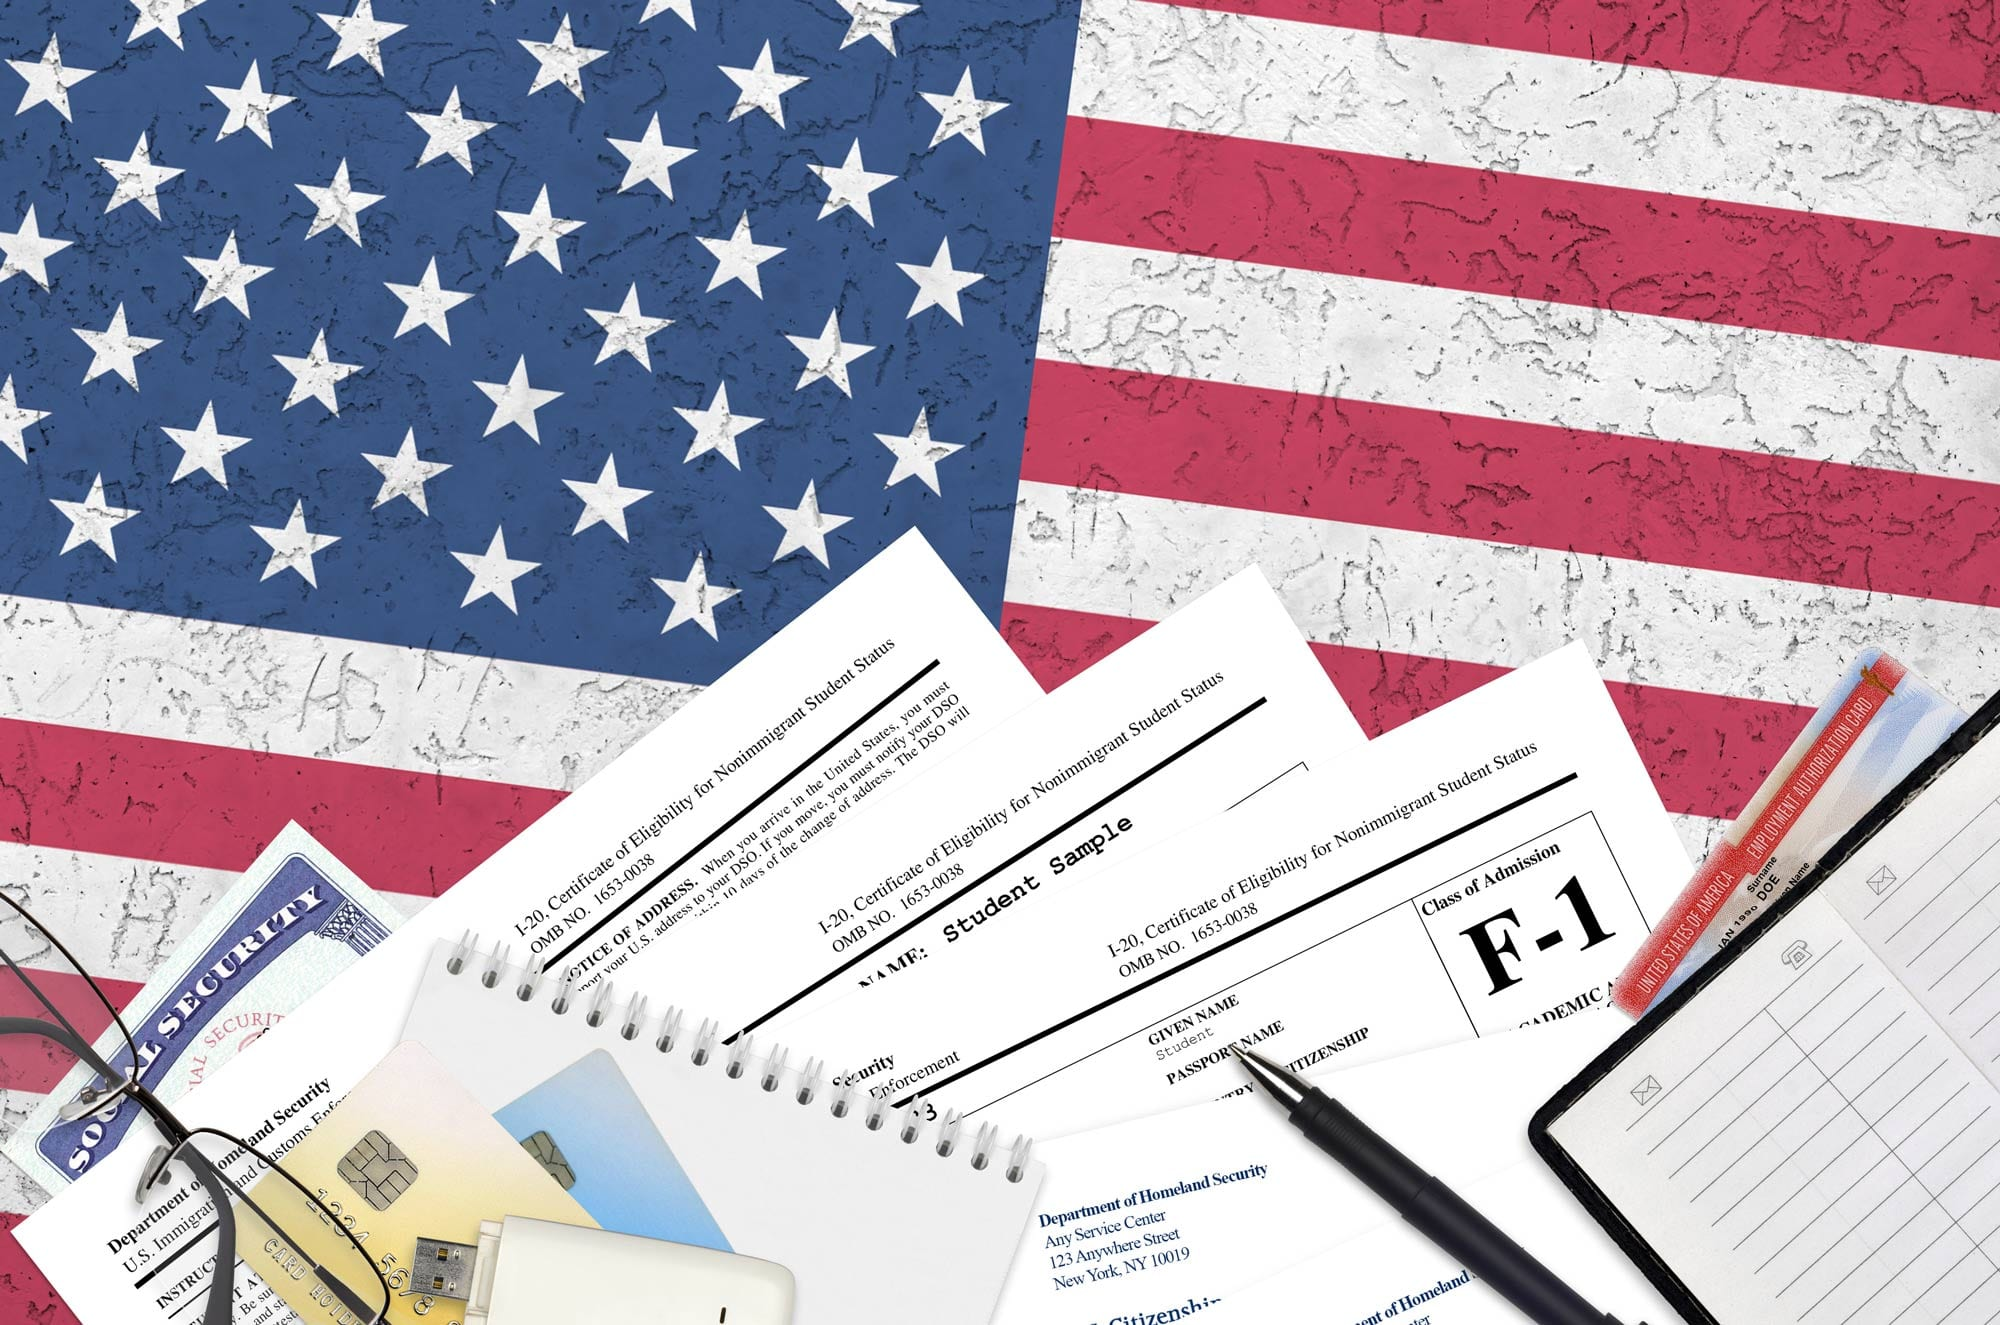 Pile of immigration and citizenship documents for the USA | Clearwater Law Group | undocumented immigrants